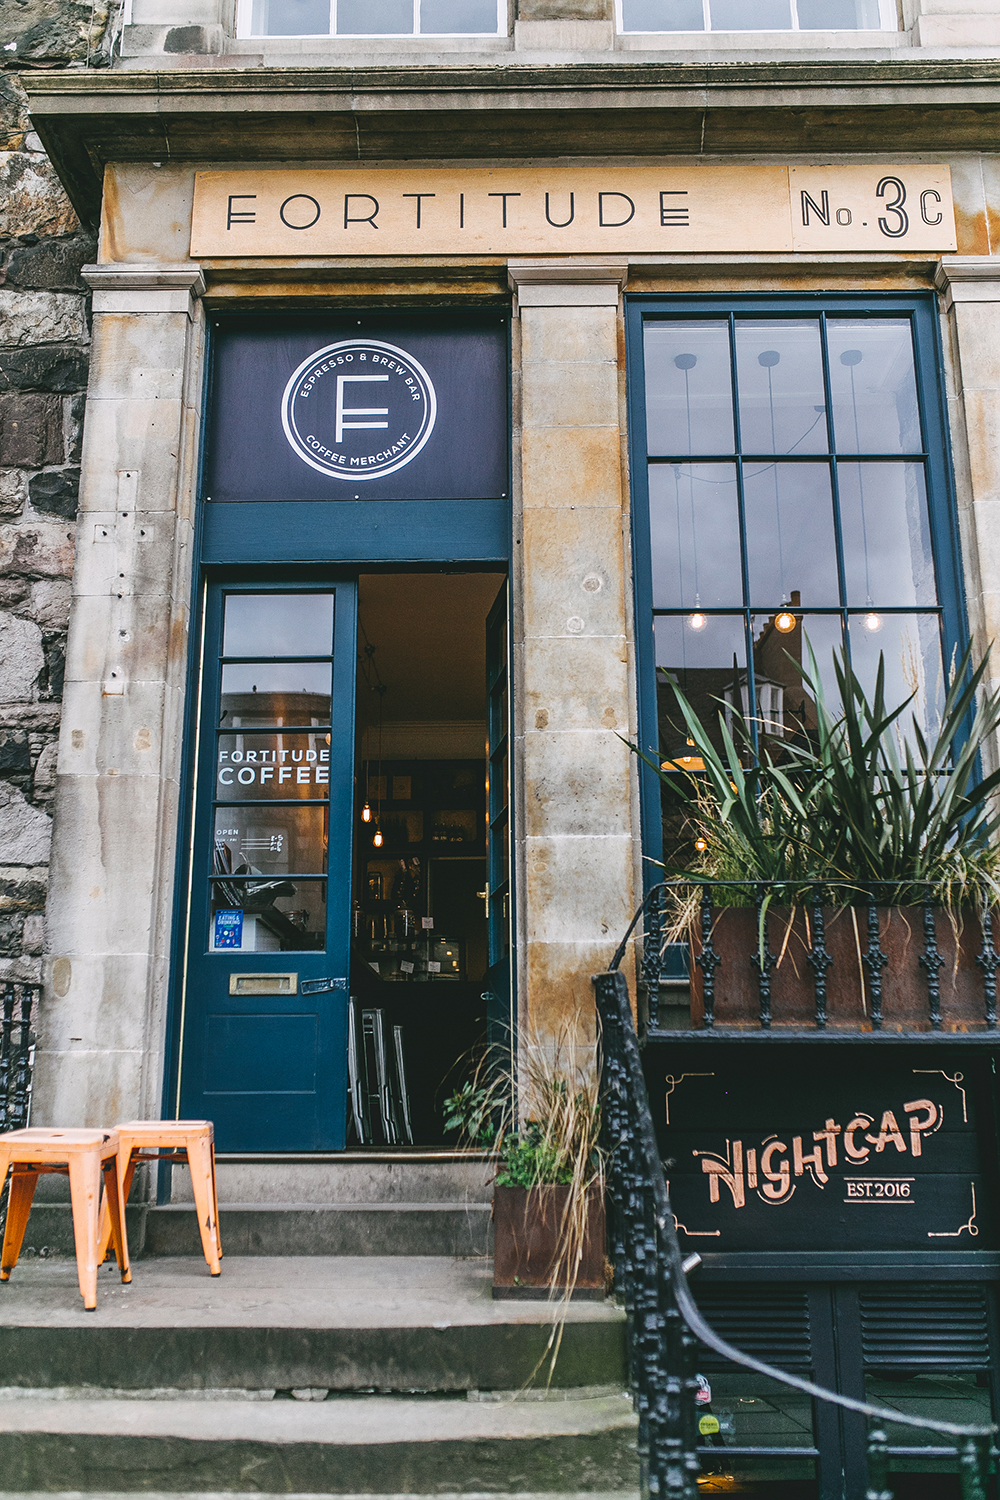 livvyland-blog-olivia-watson-things-to-do-edinburgh-scotland-day-trip-fortitude-coffee-shop-3